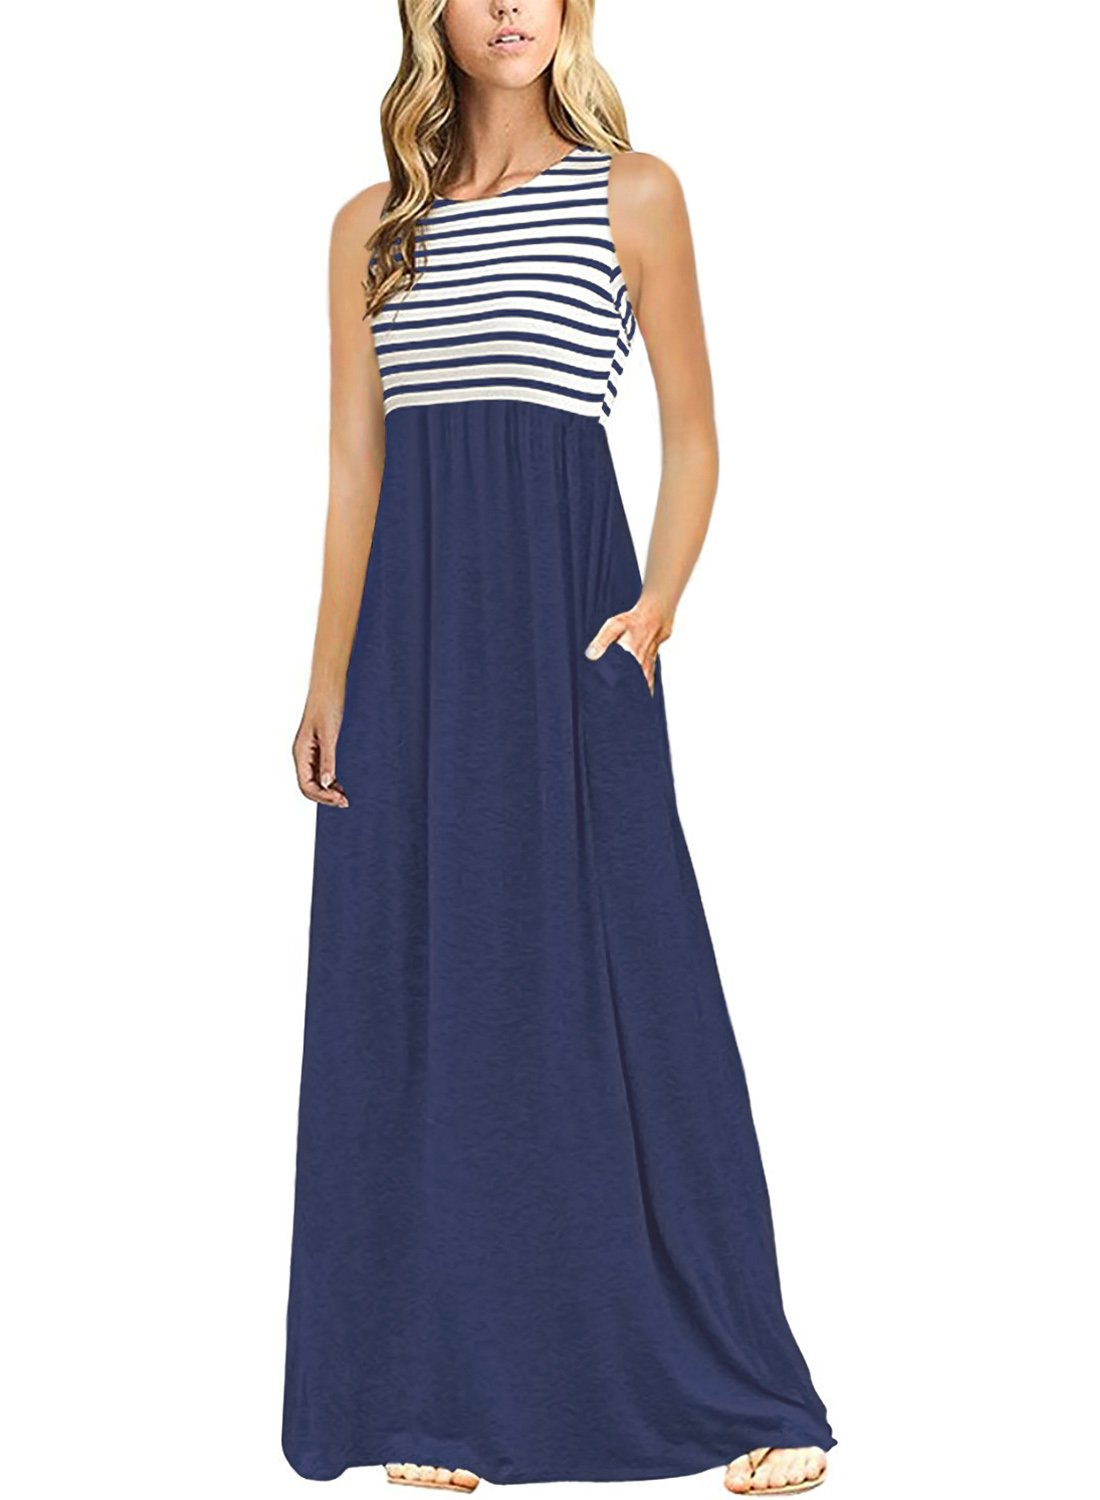 Happy Sailed Women Striped Print Round Neck Sleeveless Patchwork Long Maxi Casual Dress with Pockets X-Large Blue